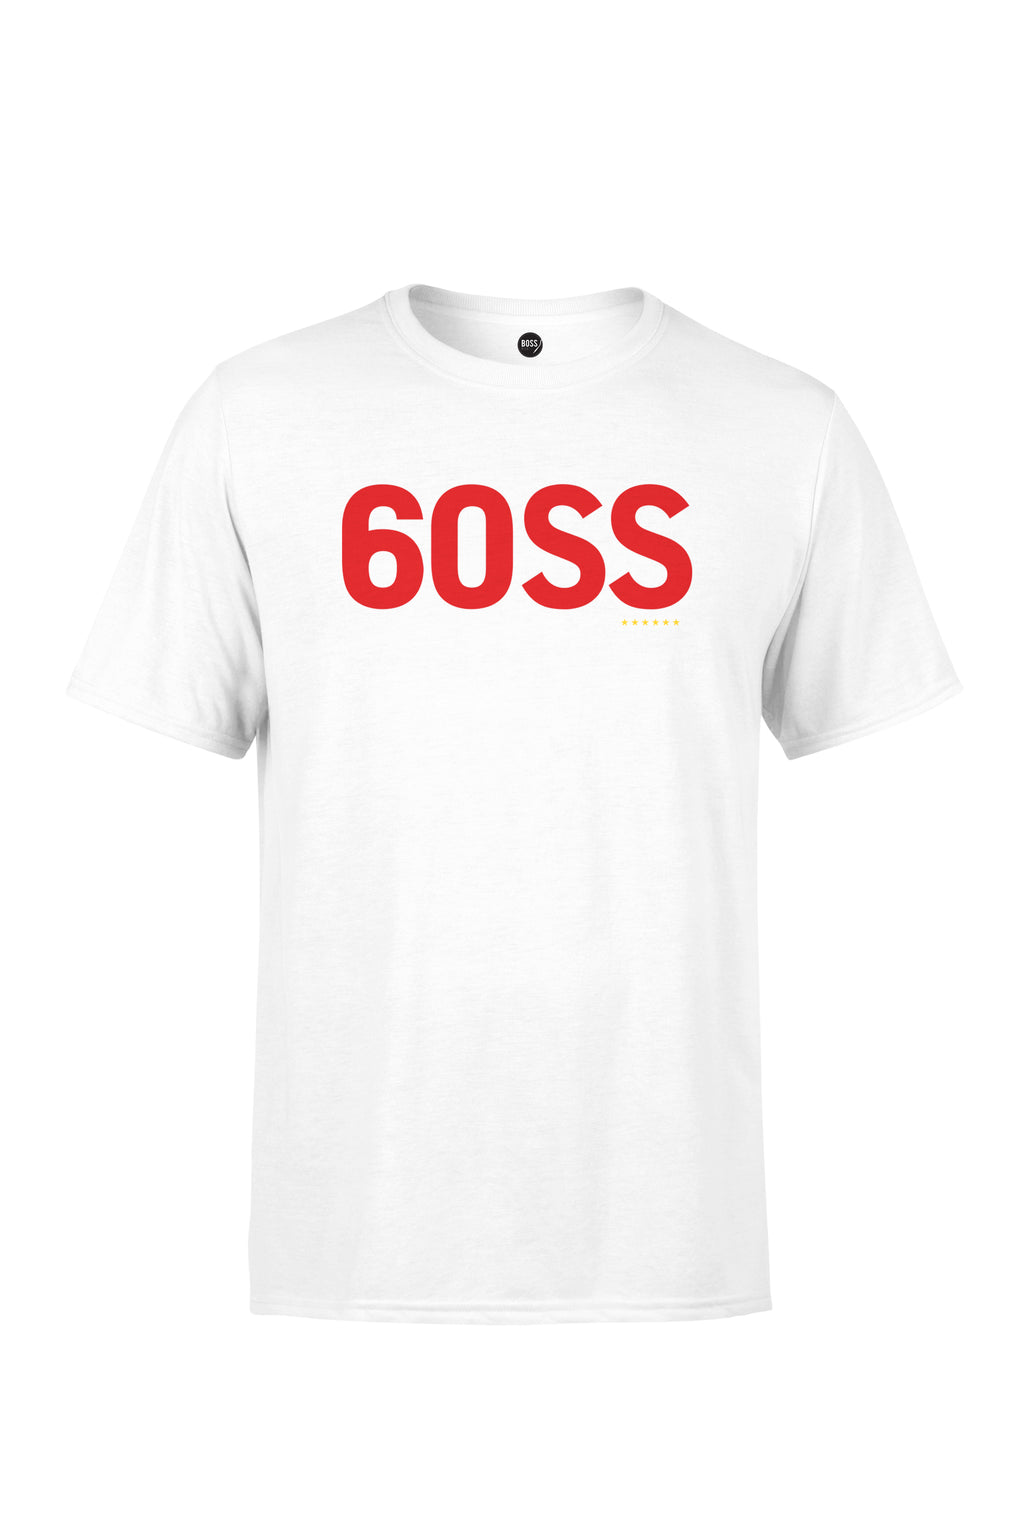 BOSS - 6OSS ****** (White)